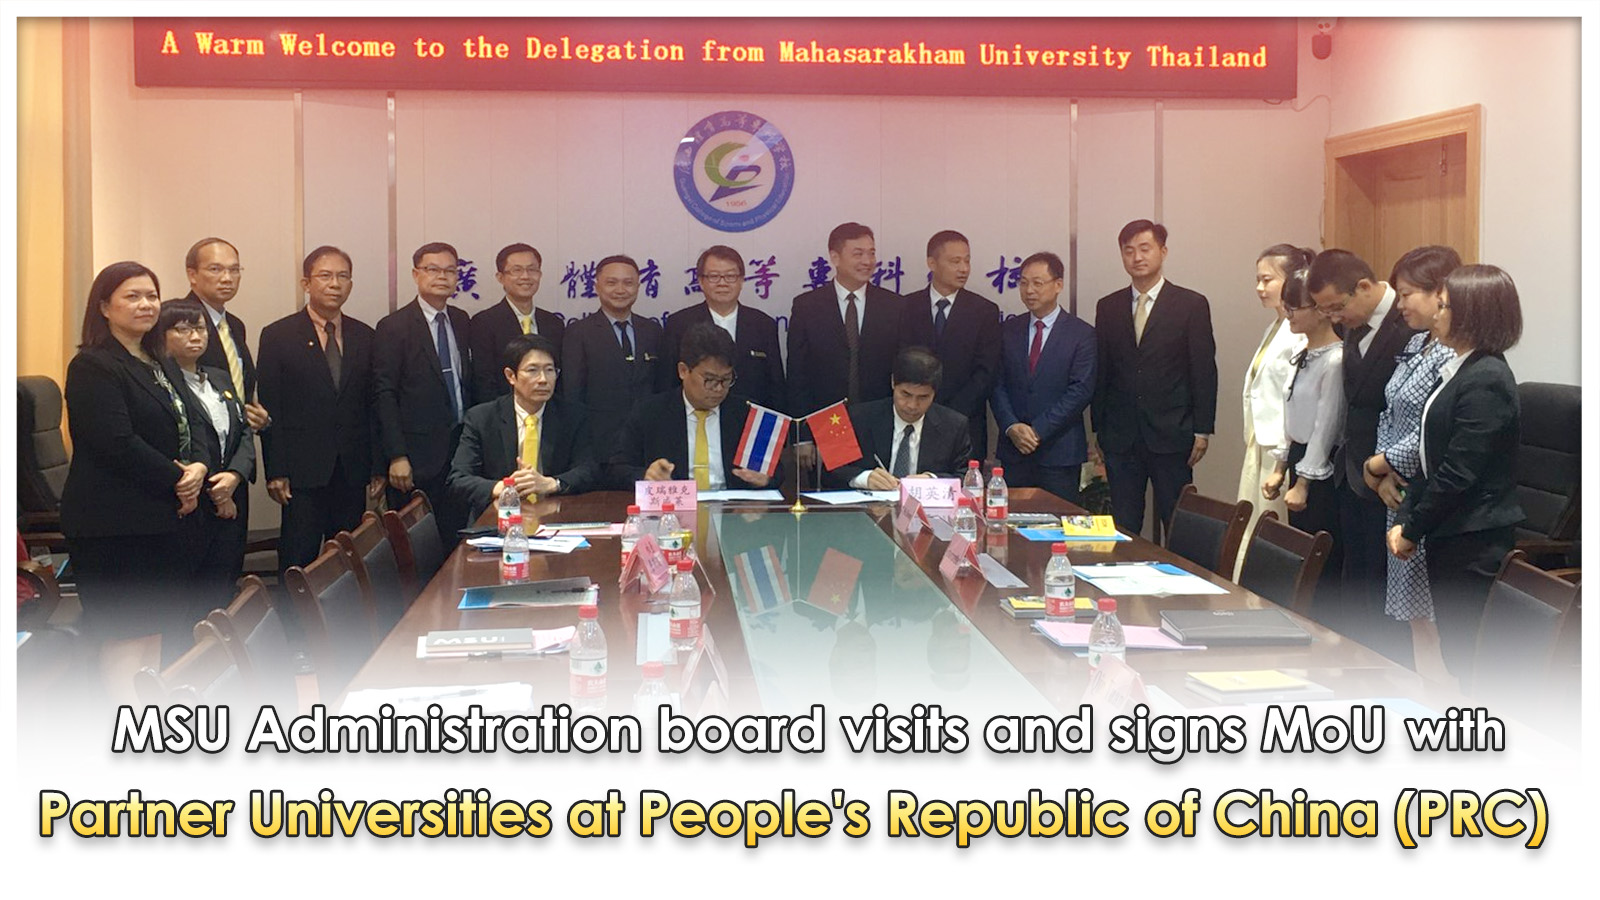 MSU Administration board visits and signs MoU with Partner Universities at People's Republic of China (PRC)